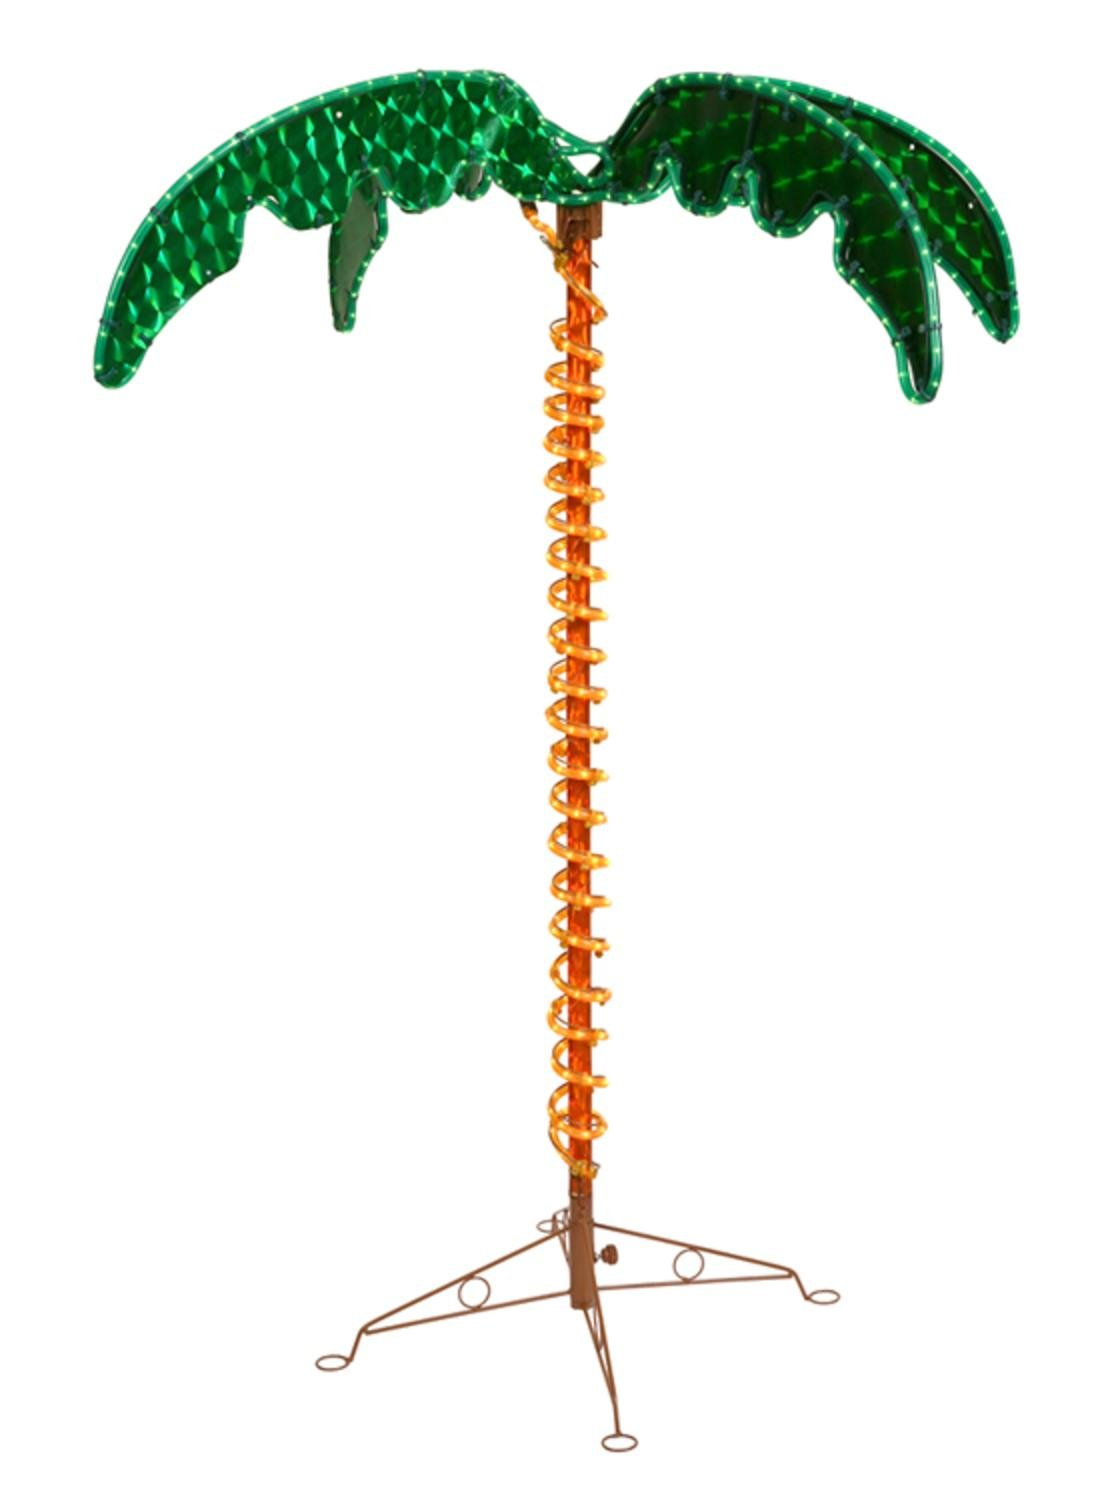 Vickerman 4.5' Deluxe Tropical Holographic LED Rope Lighted Palm Tree with Amber Trunk